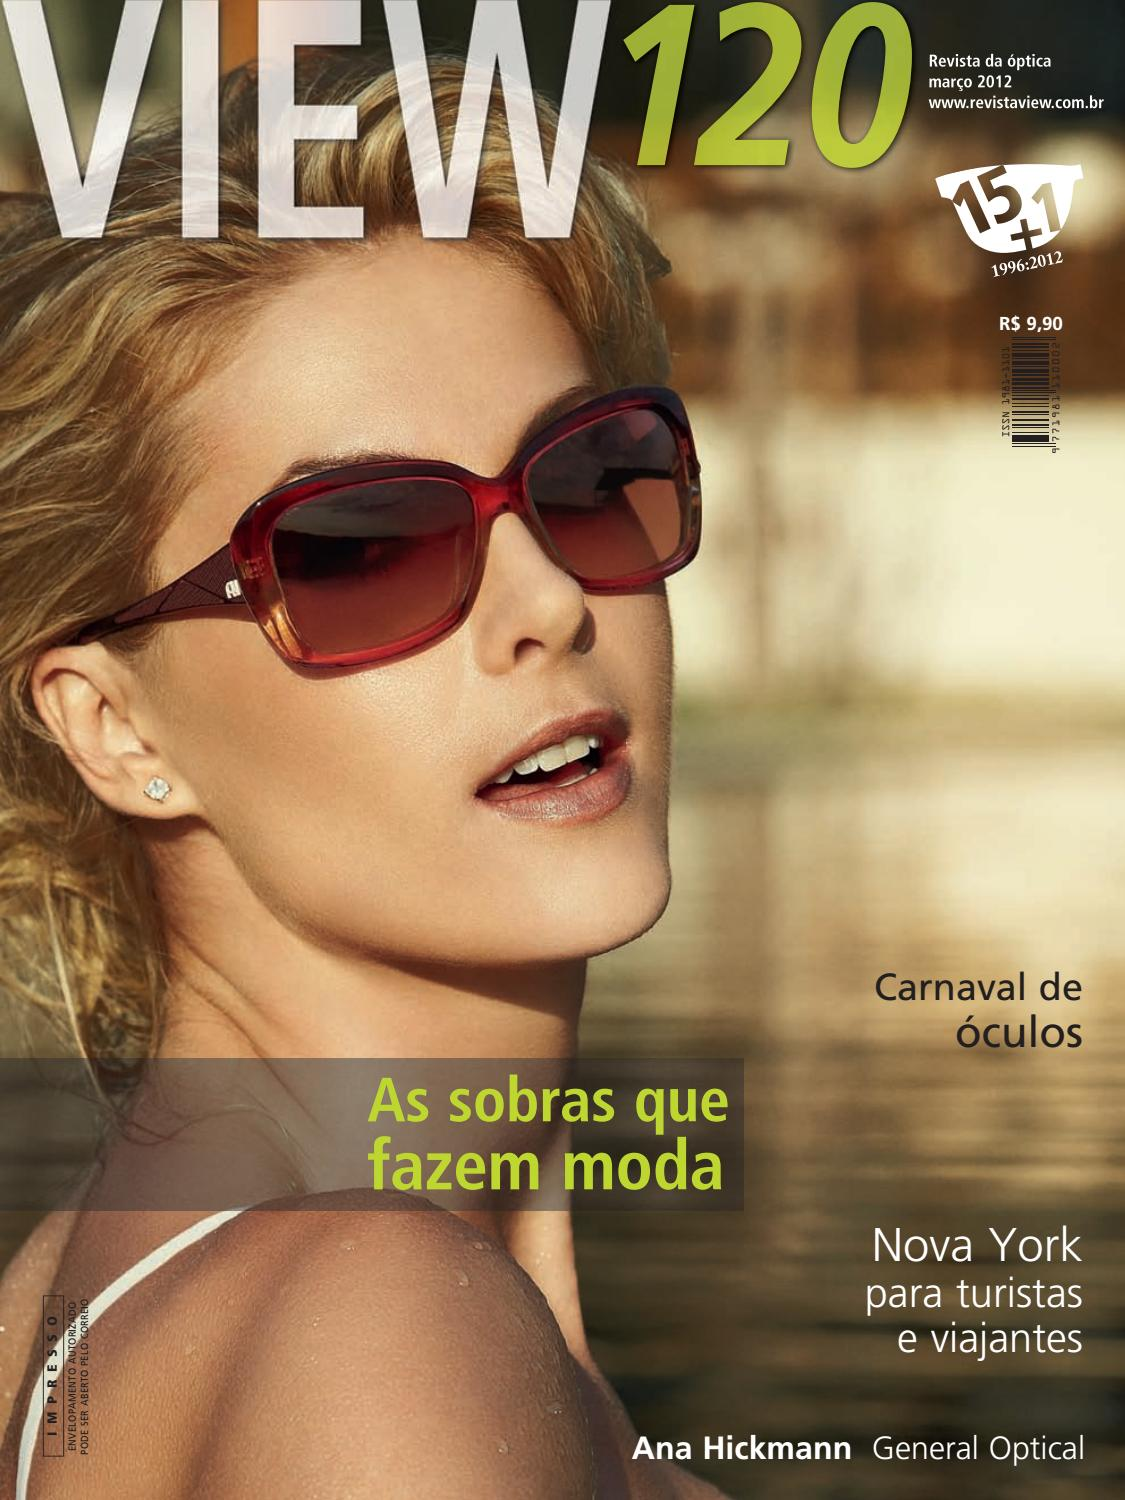 1f3a79834 VIEW 120 by Revista VIEW - issuu